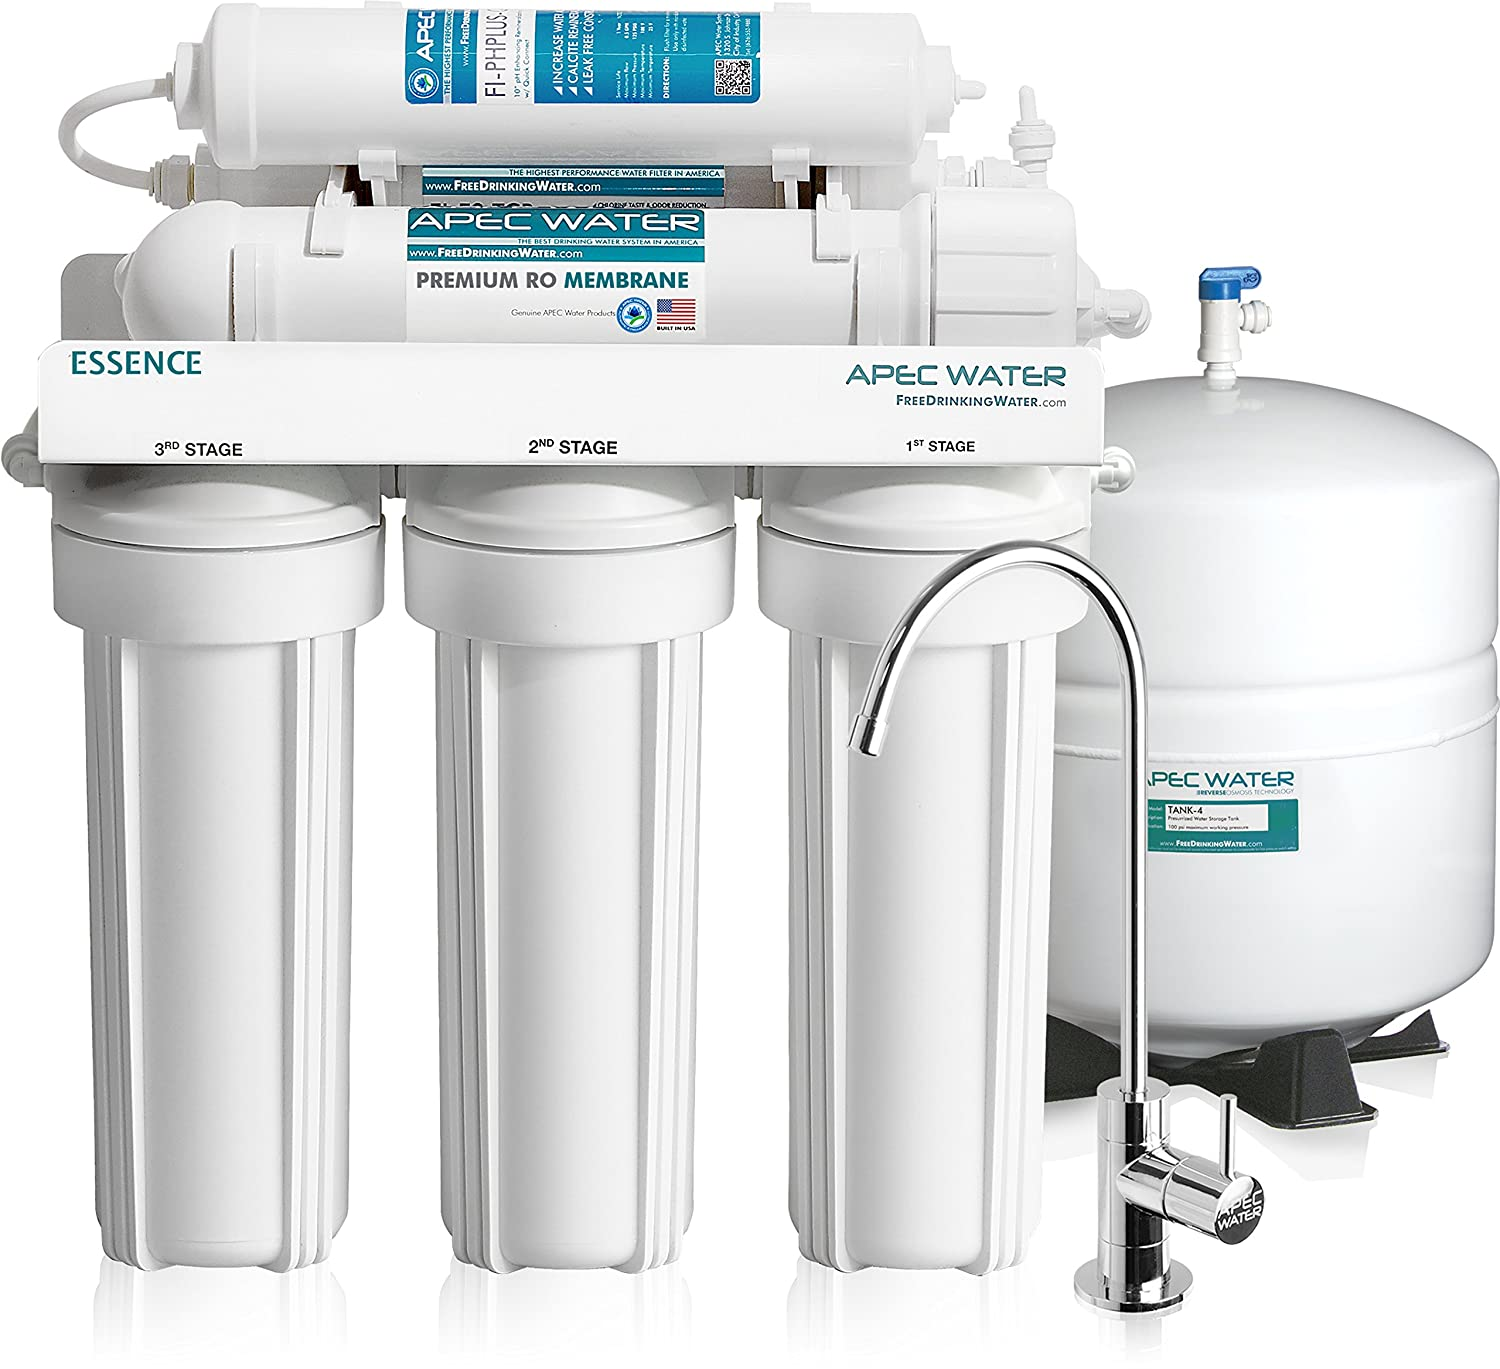 How To Filter Water Without A Filter Best Water Filter Reviews Of 2017 Purifier Advisors